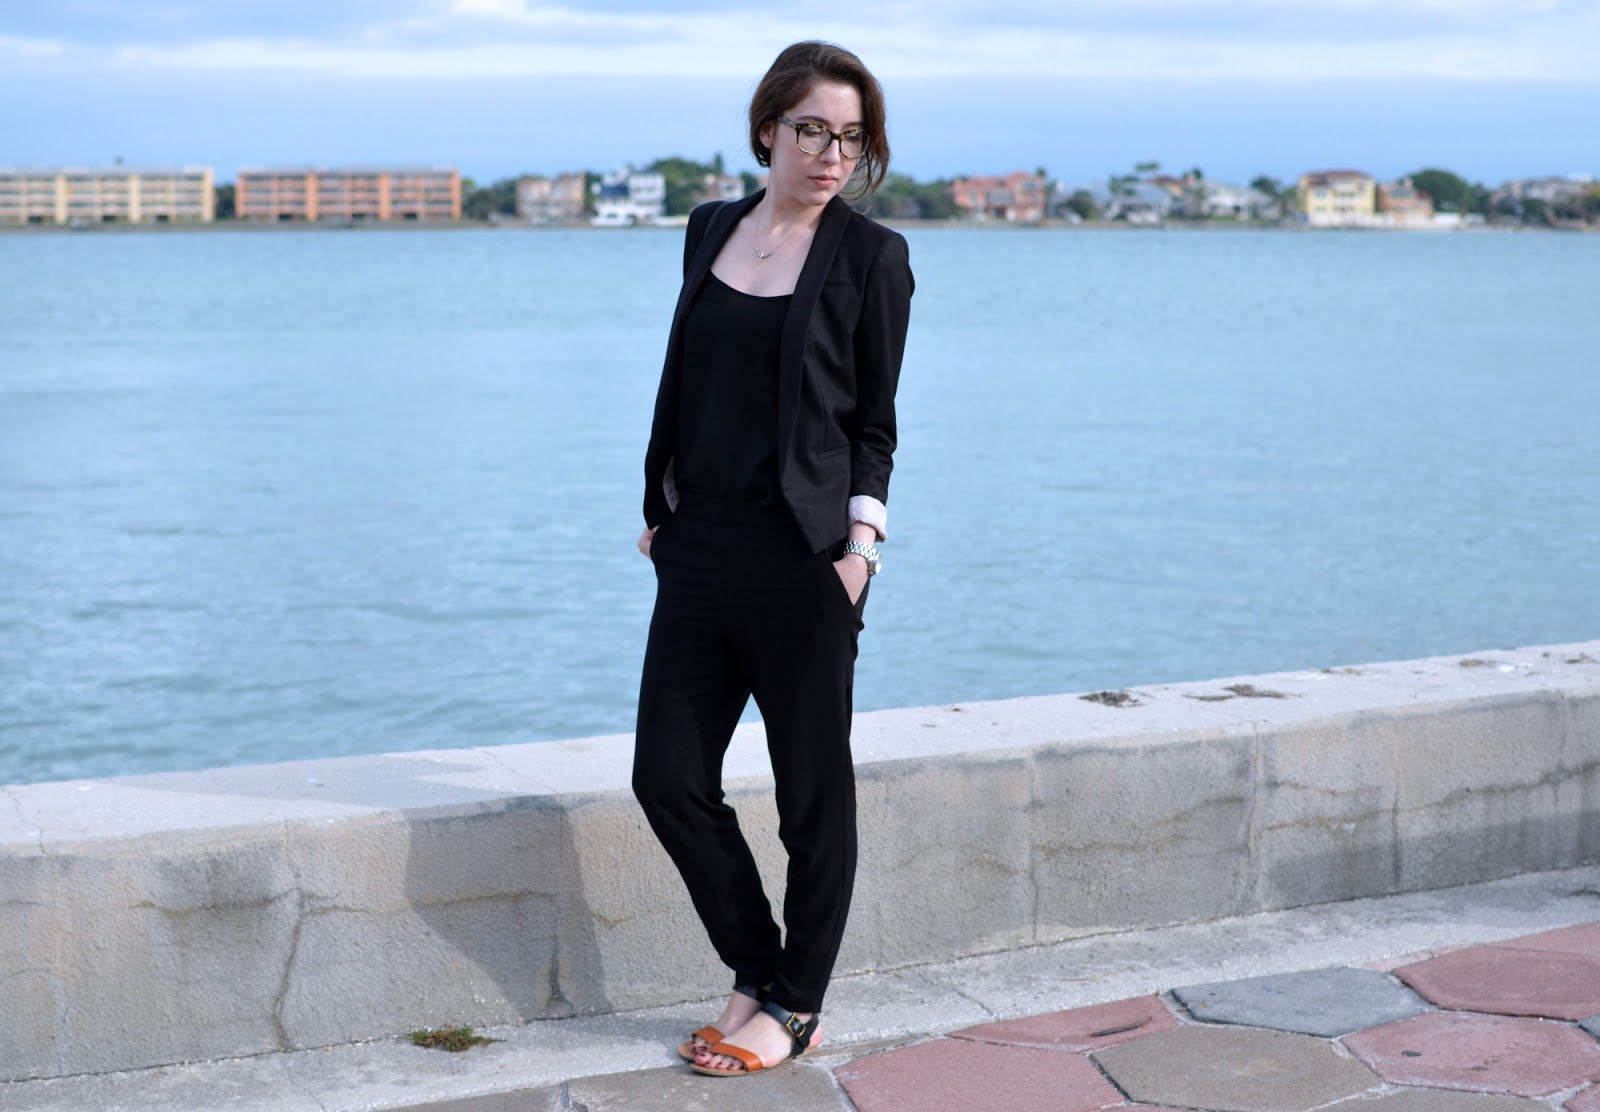 All black OOTD, with H&M trousers, blazer, and tank top, with a Coach bag and Target sandals.